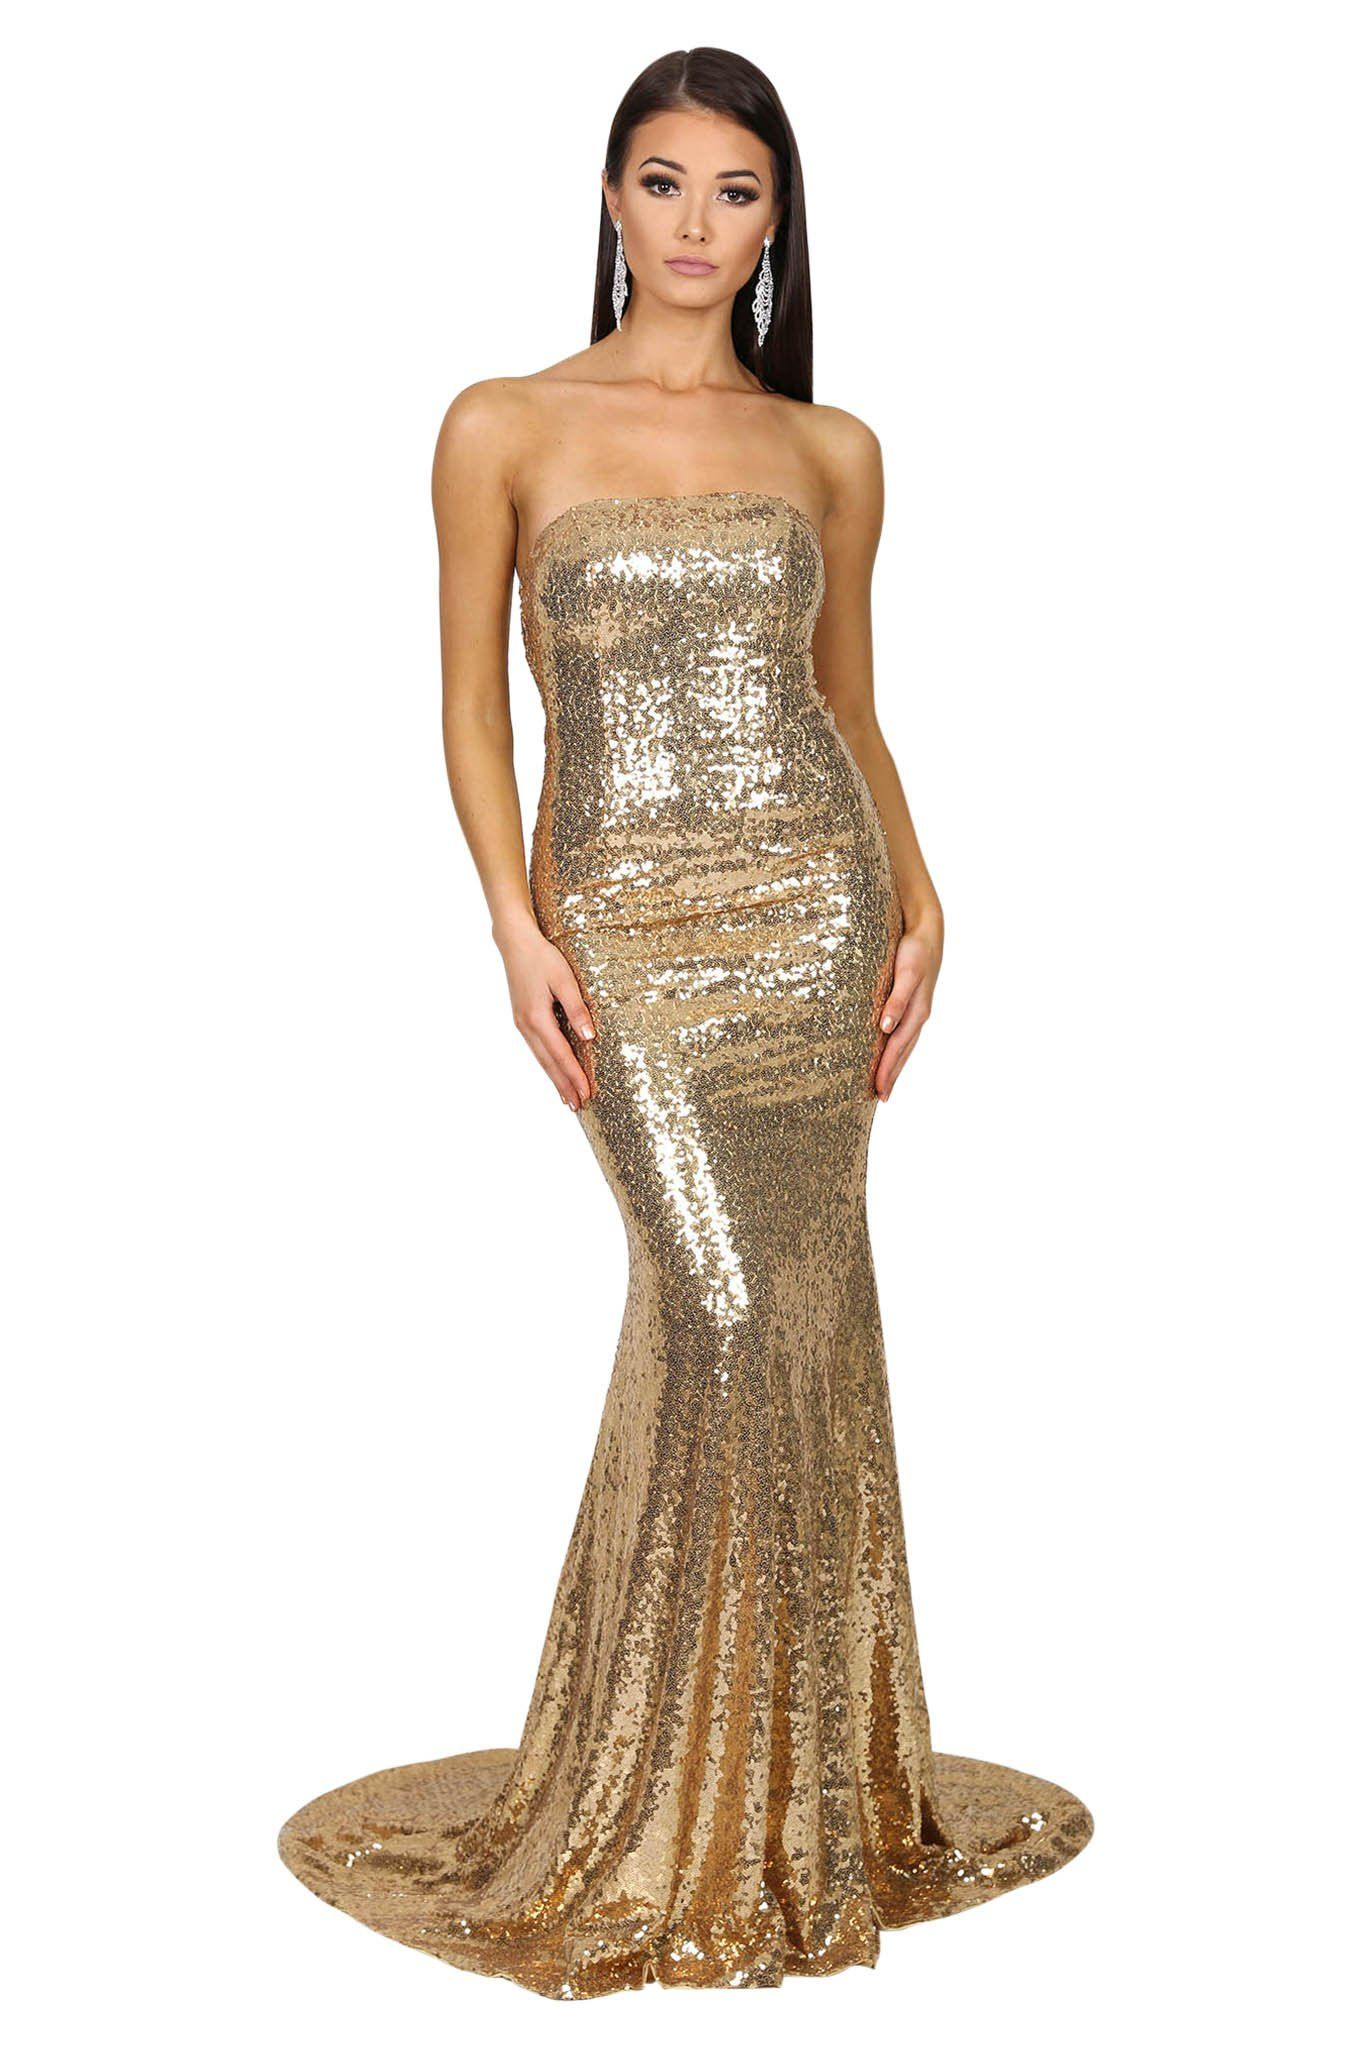 Front of Gold sequin sleeveless formal evening long gown features strapless straight neckline, flared mermaid skirt and long train